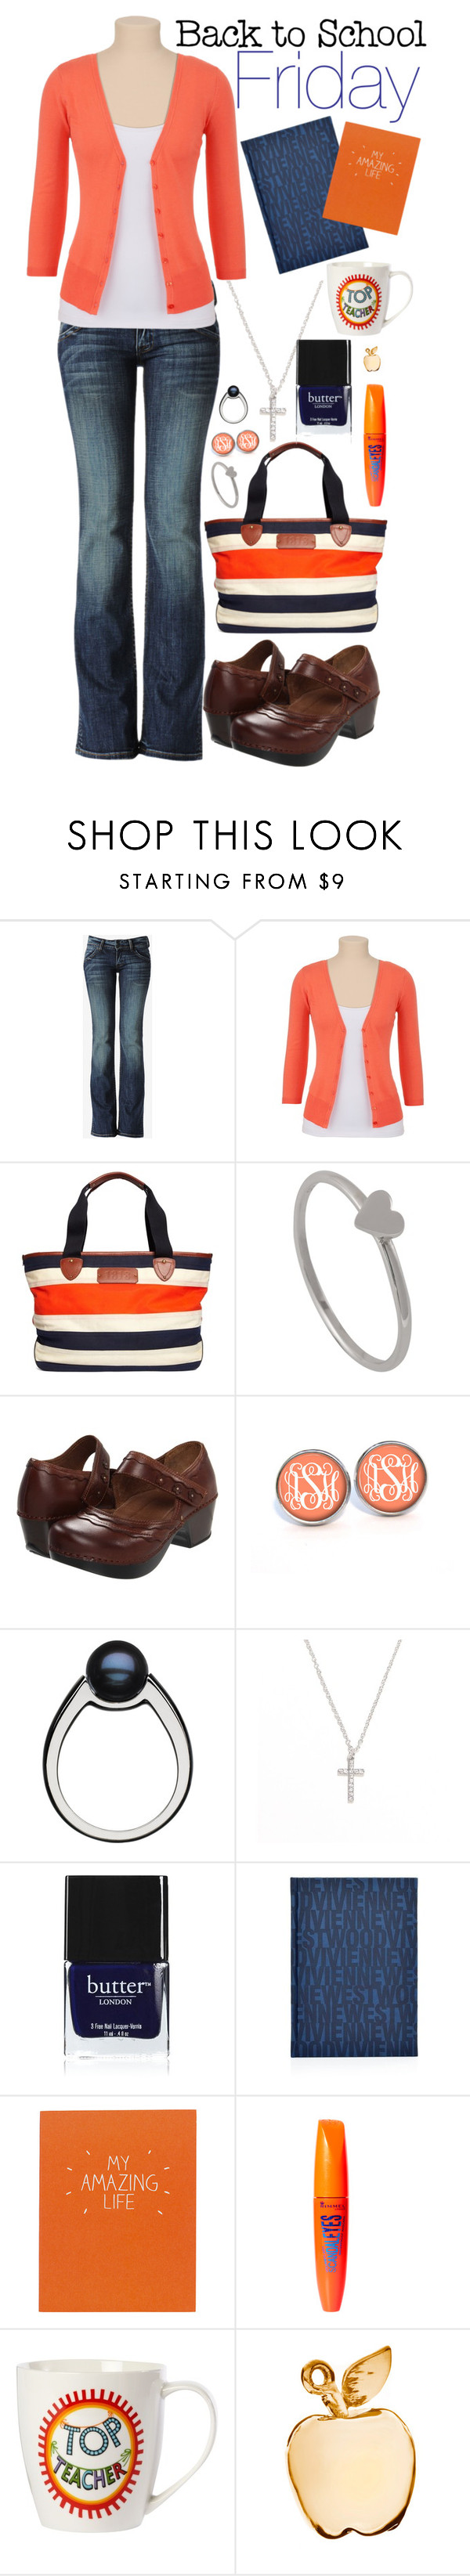 Back to School: Friday #2 by namelessfashionista on Polyvore featuring Hudson Jeans, Dansko, Brooks Brothers, With Love From CA, Altruette, Links of London, Rimmel, Butter London, Vivienne Westwood and Wild & Wolf